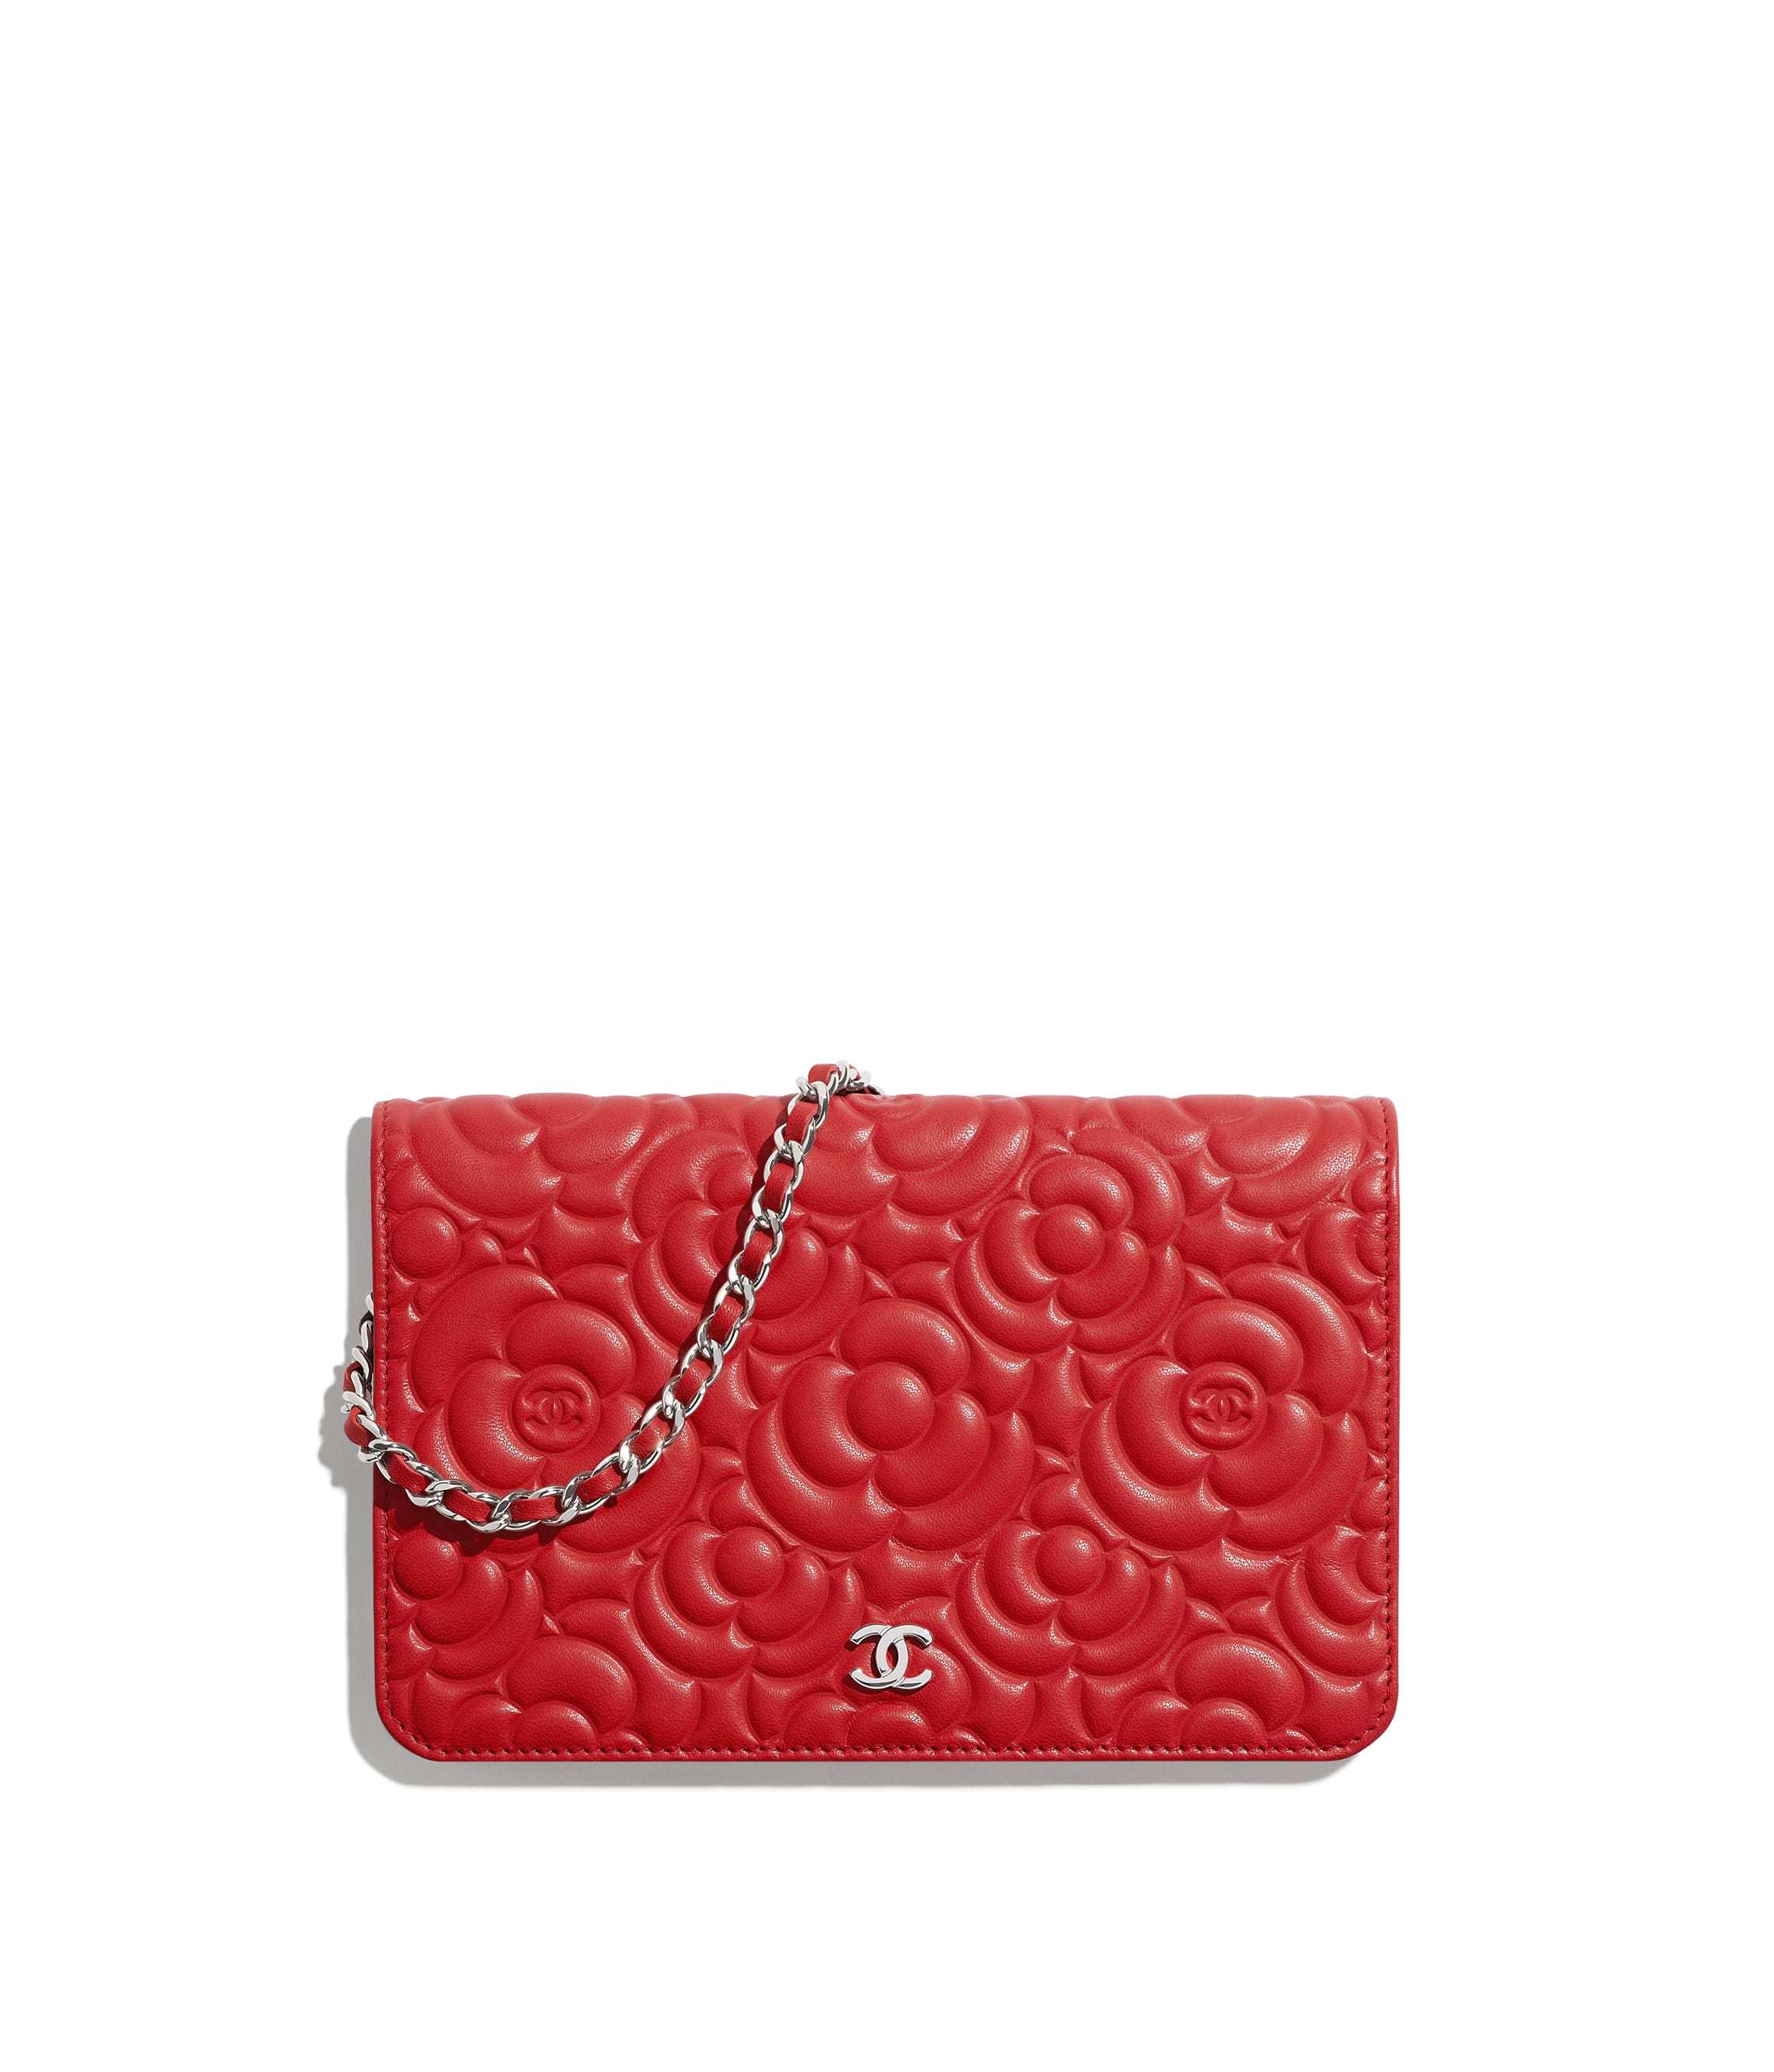 8852d8c43b5096 Wallets on chain - Small Leather Goods - CHANEL